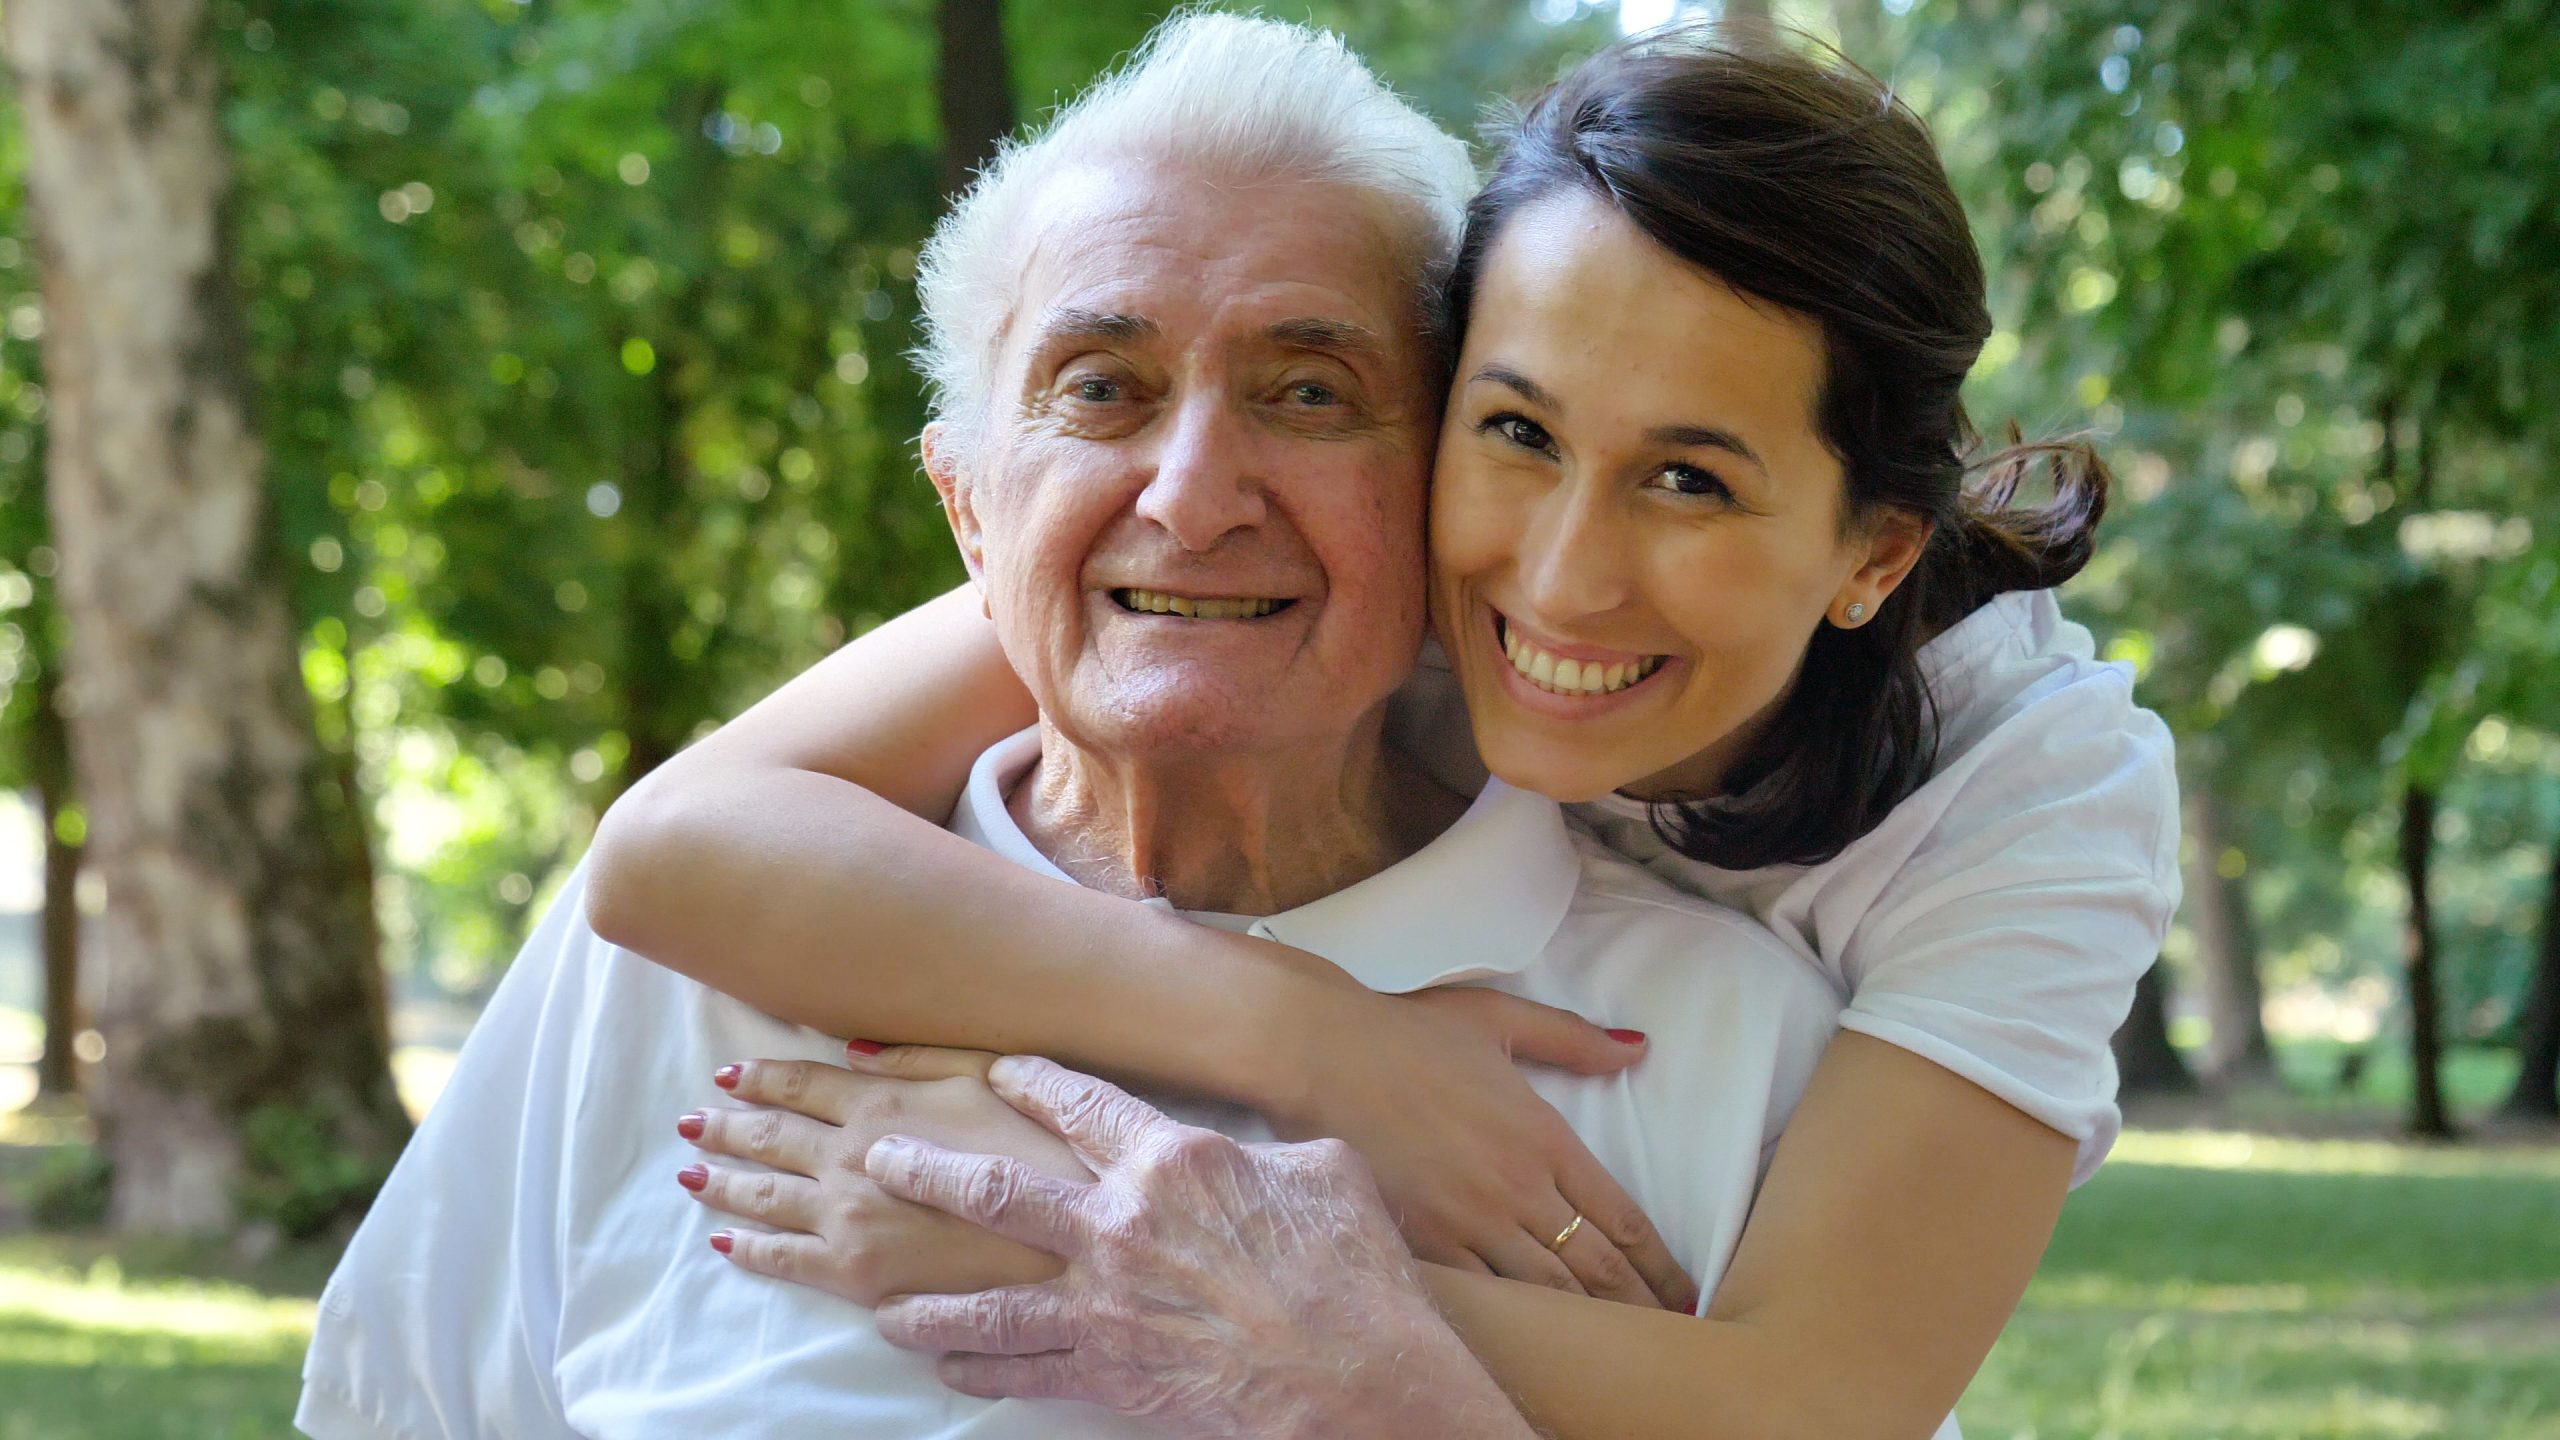 Granddaughter, nurse, caring for the elderly, girl (woman) from senior care plus hugging grandfather, smiling, happy, walking in the park. Concept: boarding house, sanatorium, a house for the elderly, help for the elderly.